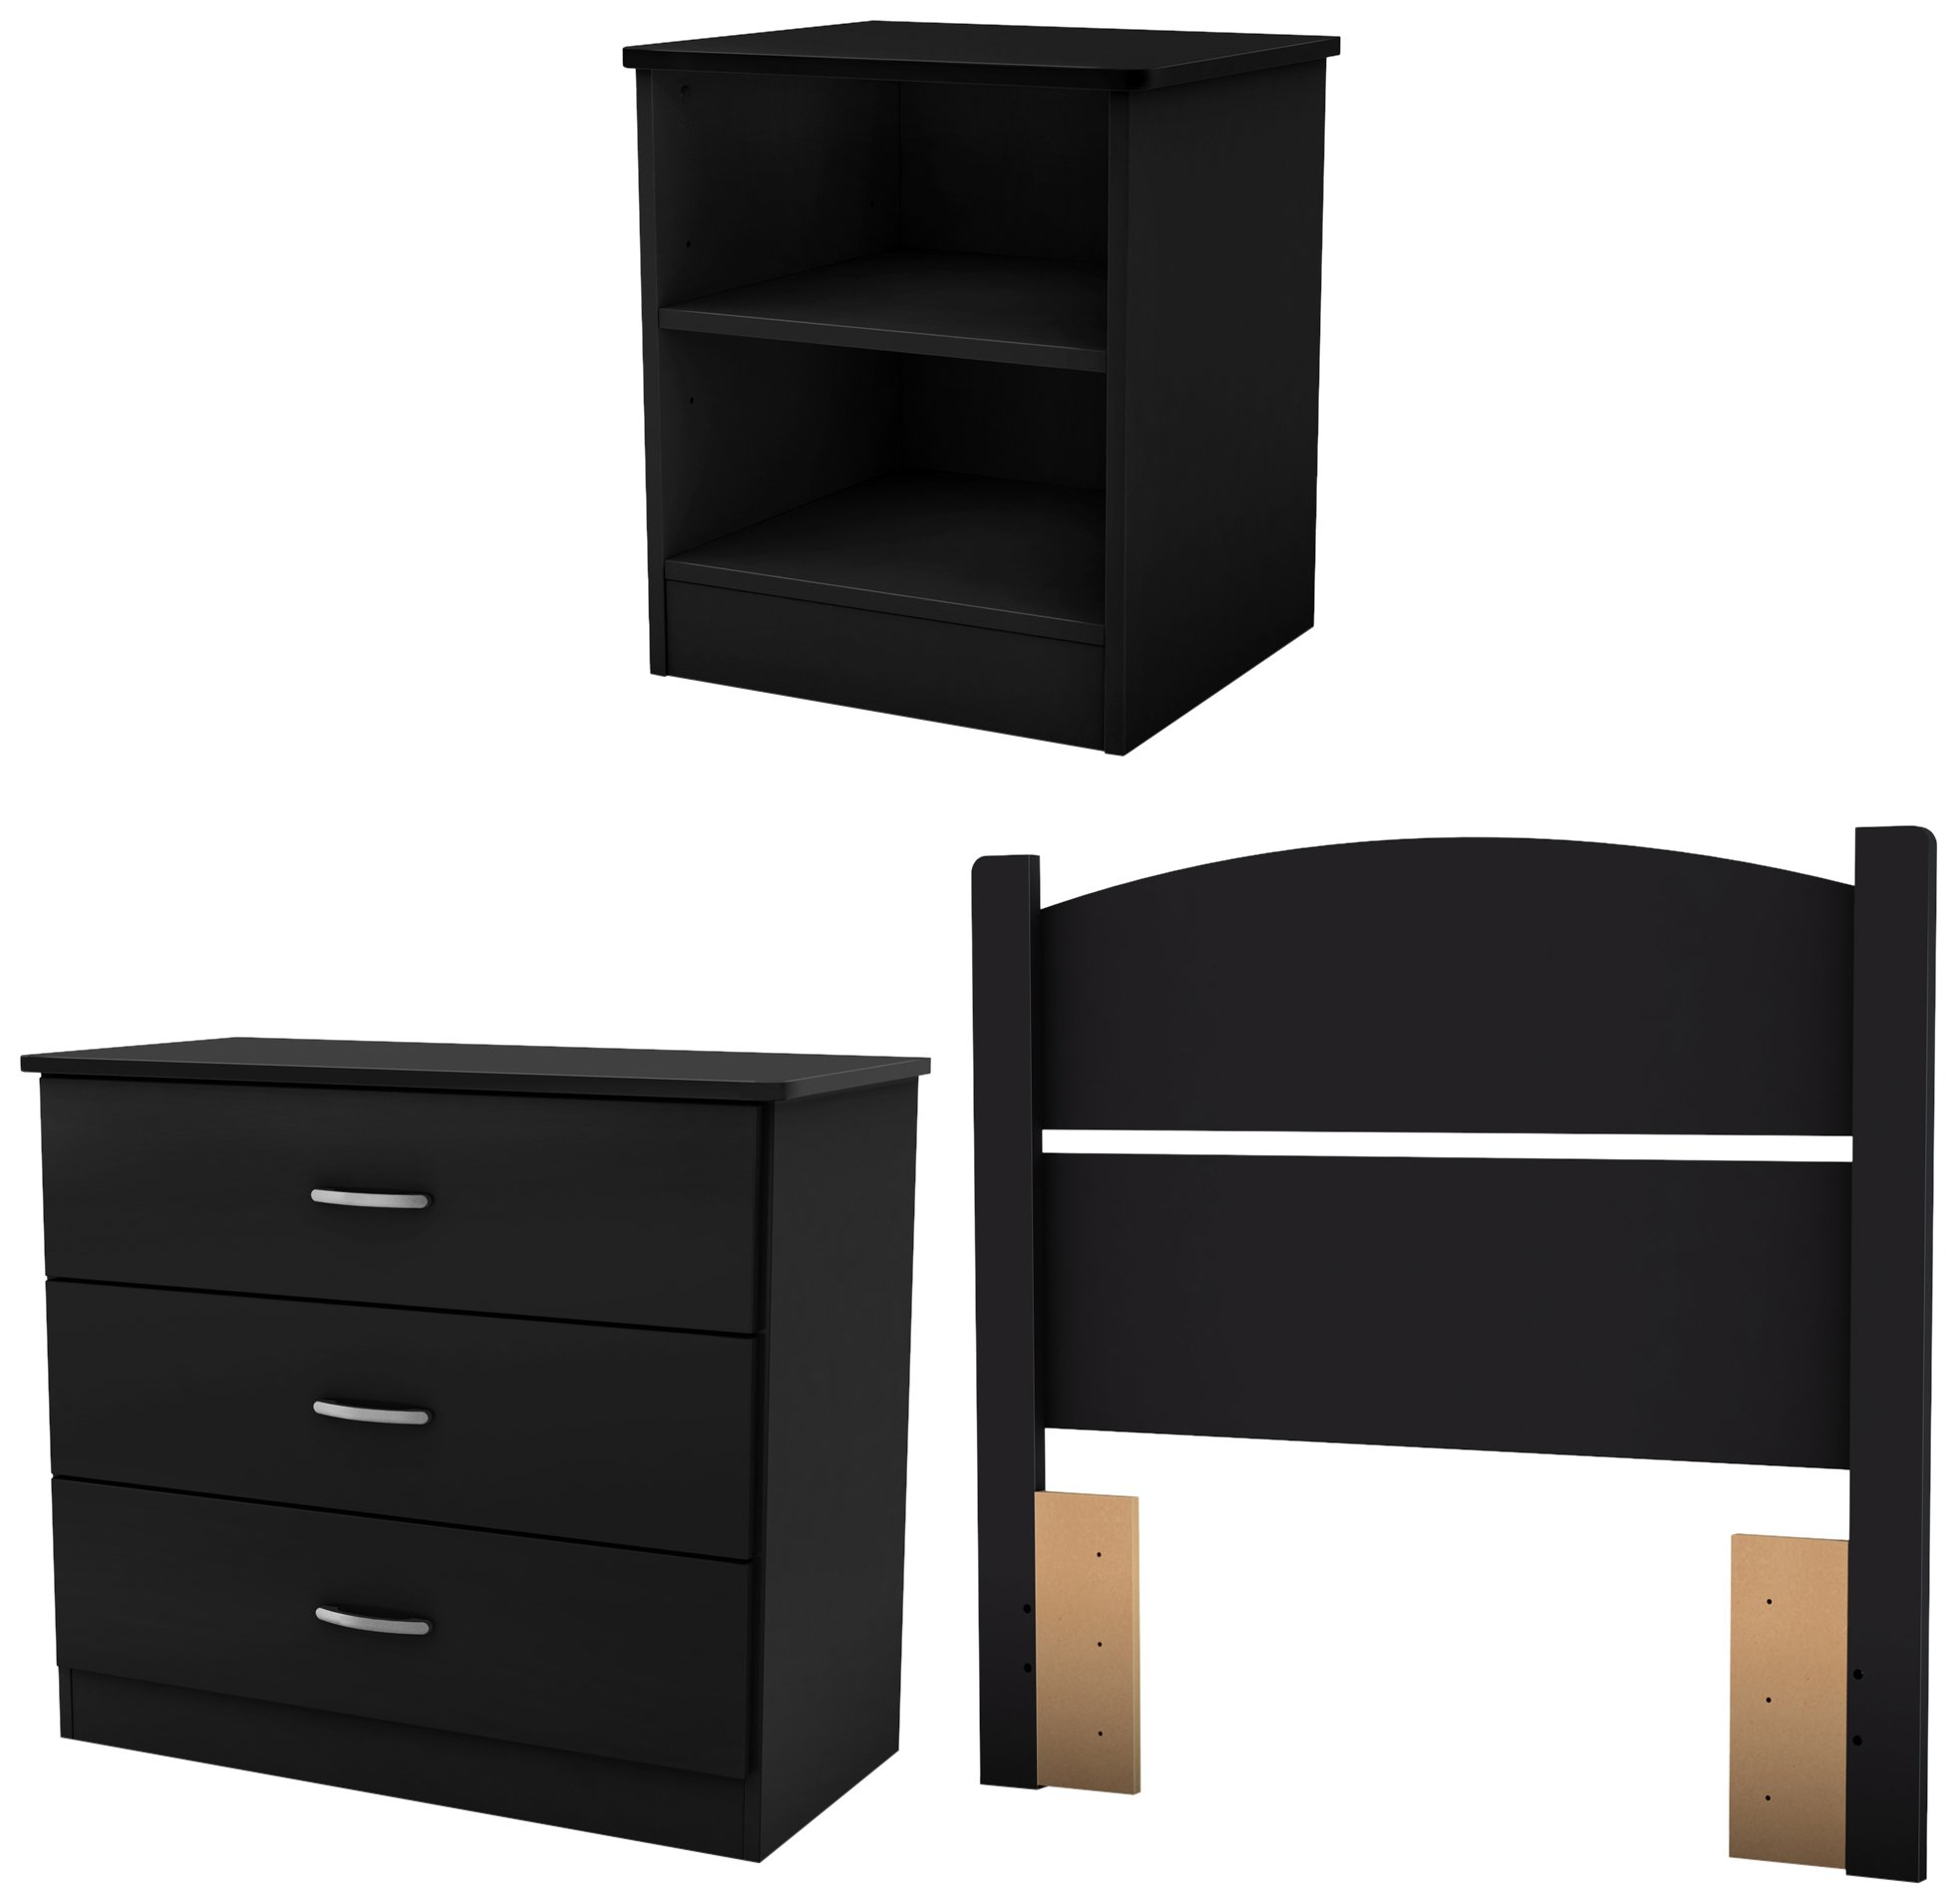 South Shore 3070223 Libra 3-Piece Bedroom Set with Dresser, Nightstand, and Twin Headboard, Pure Black by South Shore